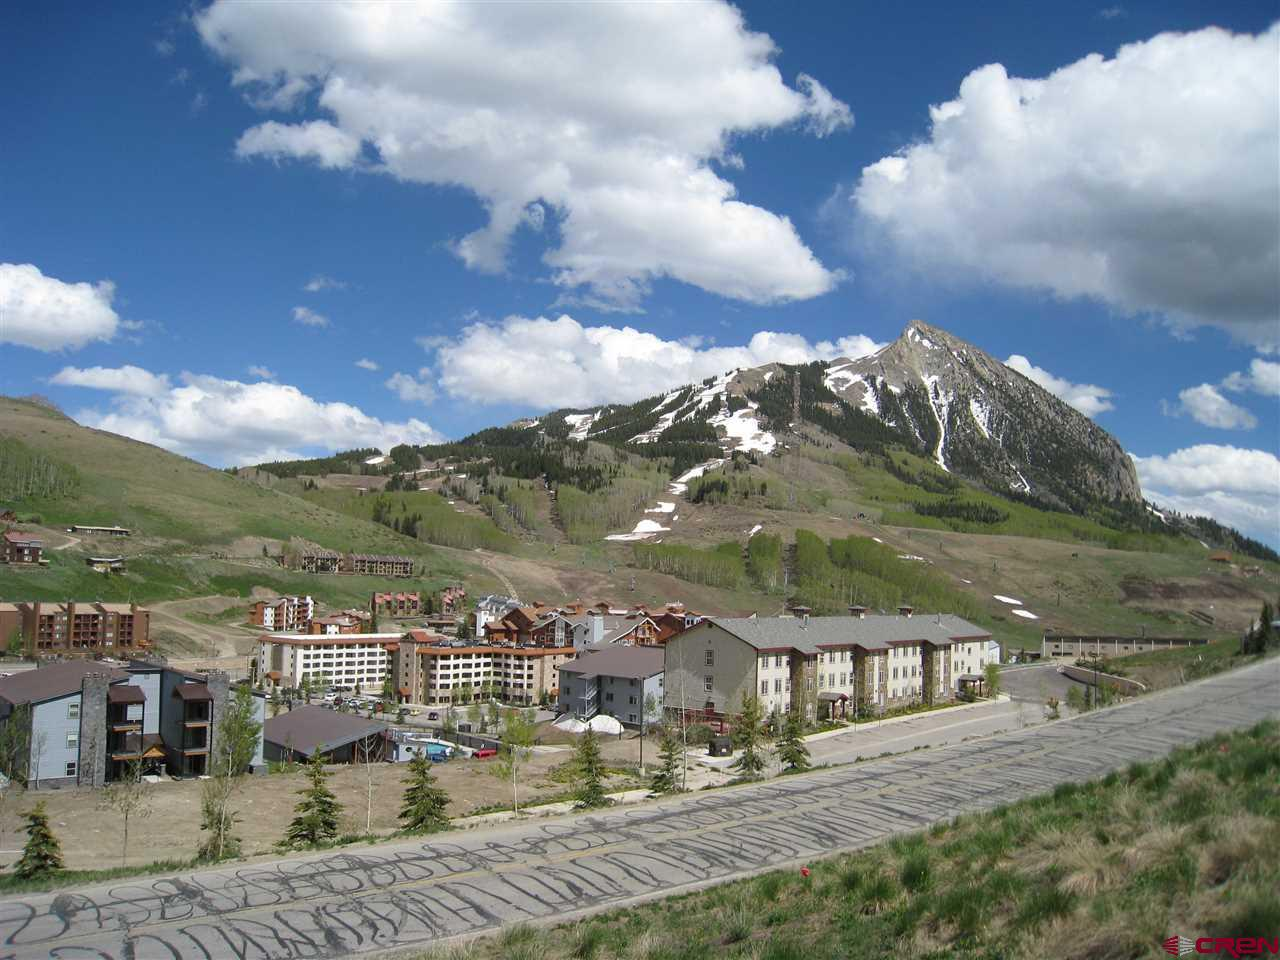 MLS# 757036 - 6 - 17 Marcellina Lane, Mt. Crested Butte, CO 81225